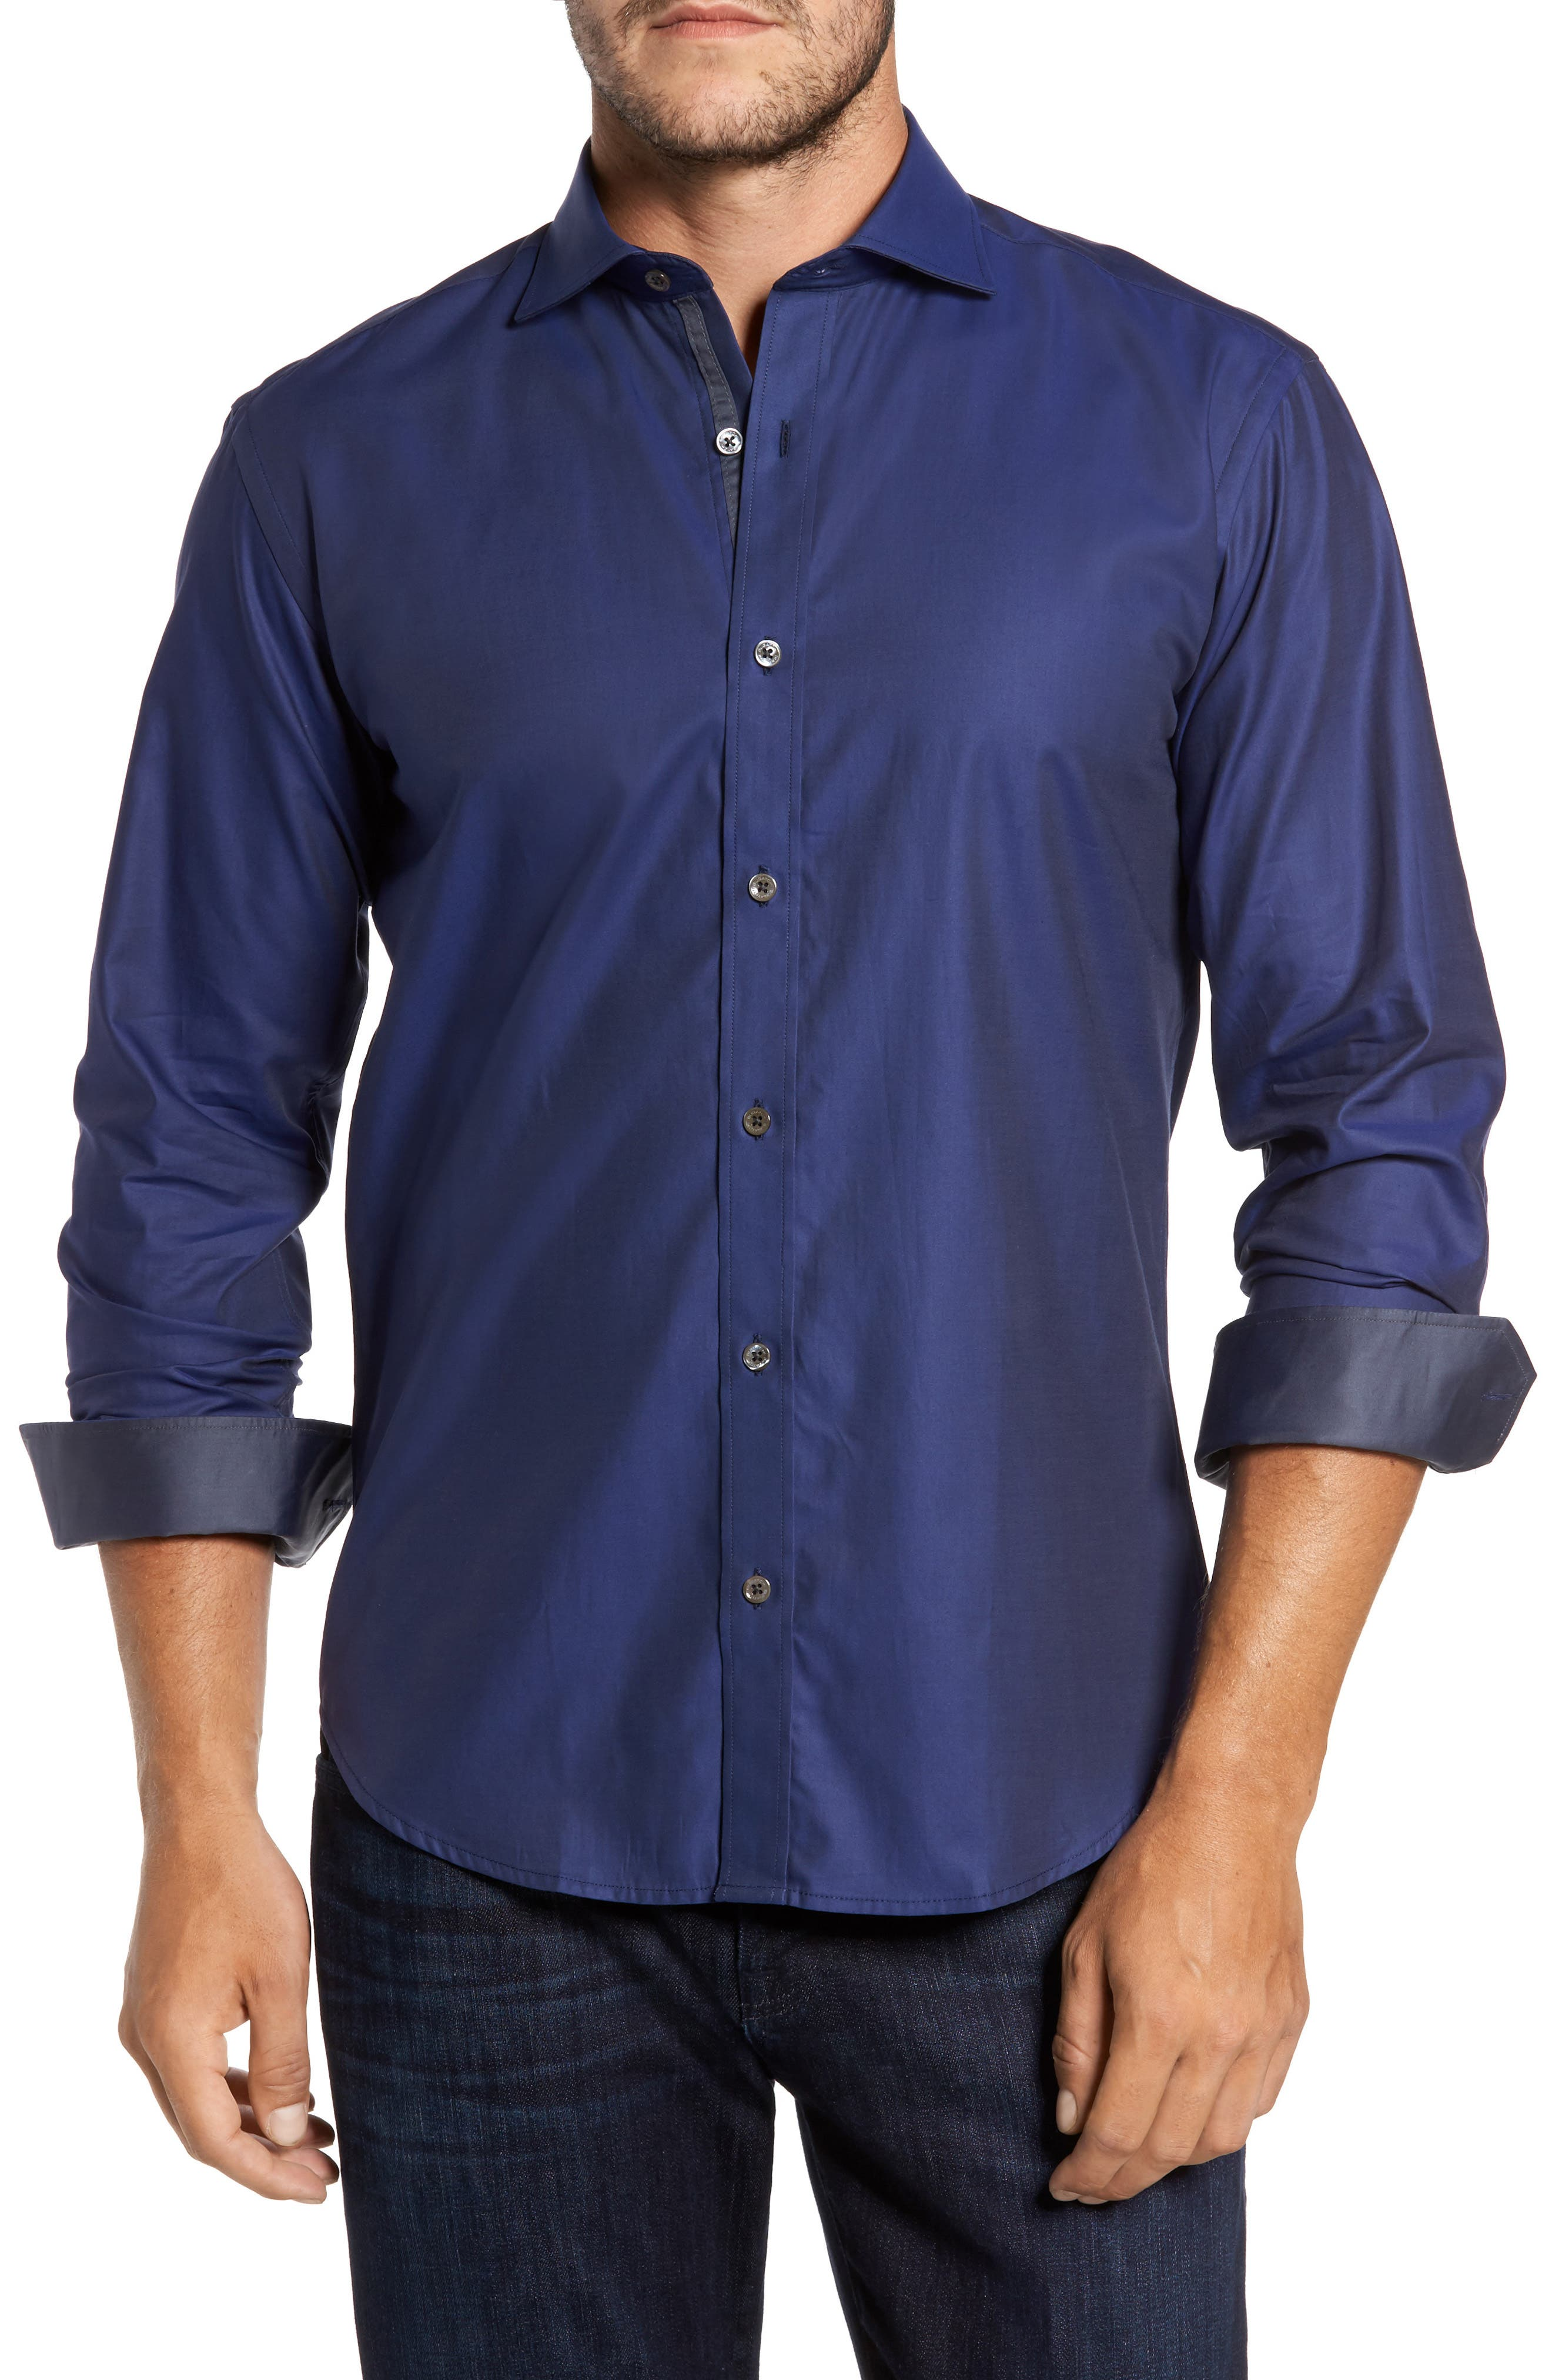 Alternate Image 1 Selected - Bugatchi Trim Fit Solid Sport Shirt